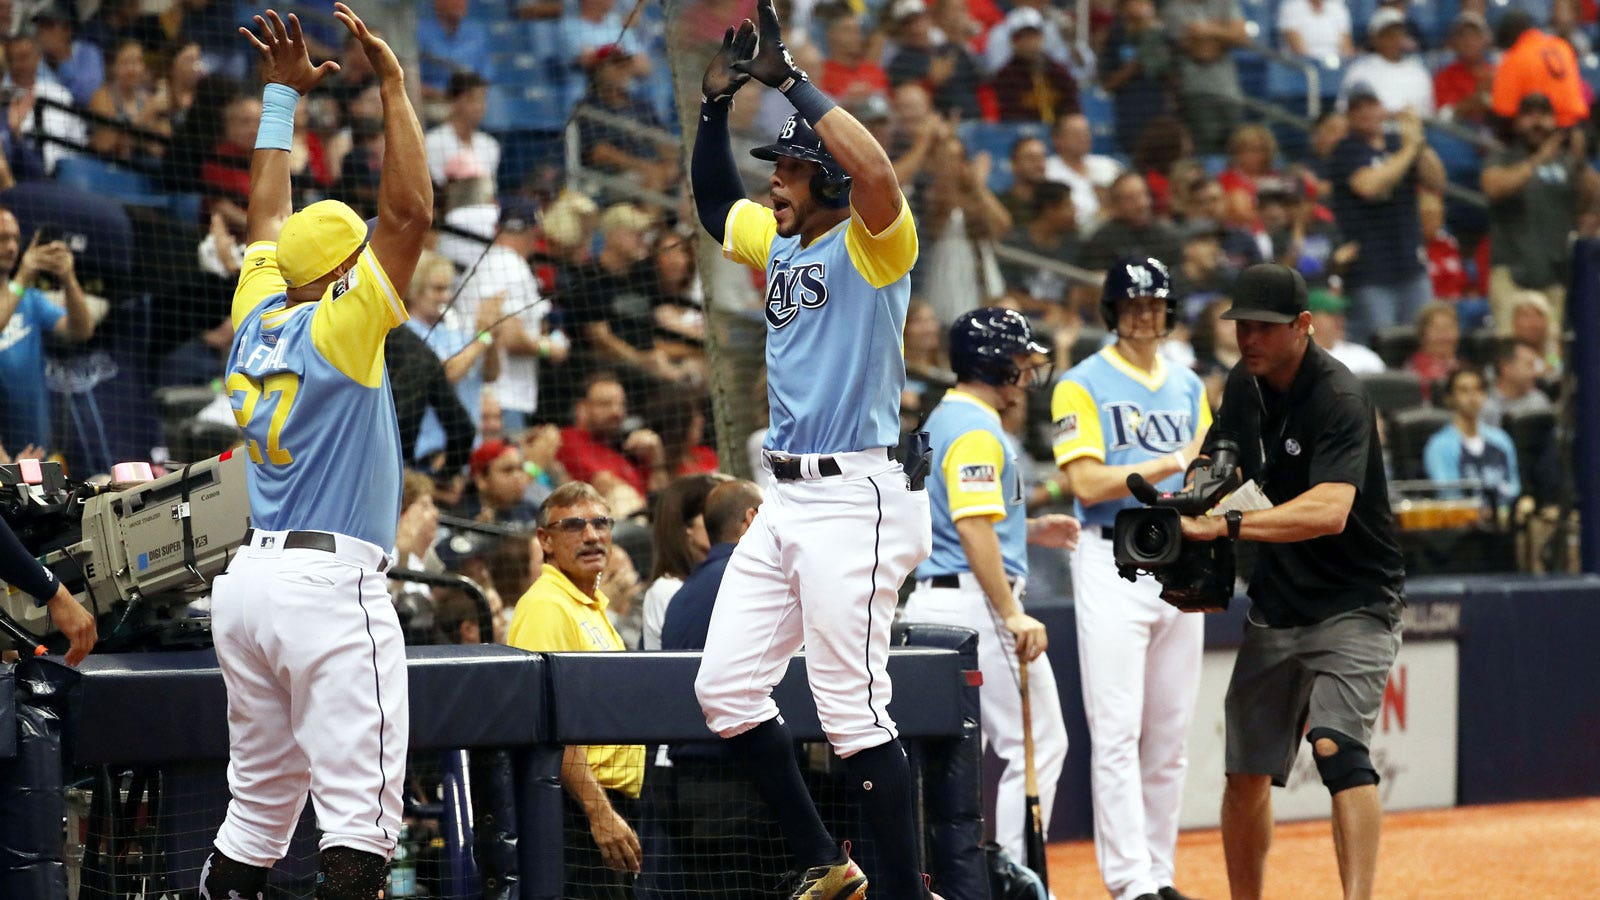 tampa bay rays 5 boston red sox 1